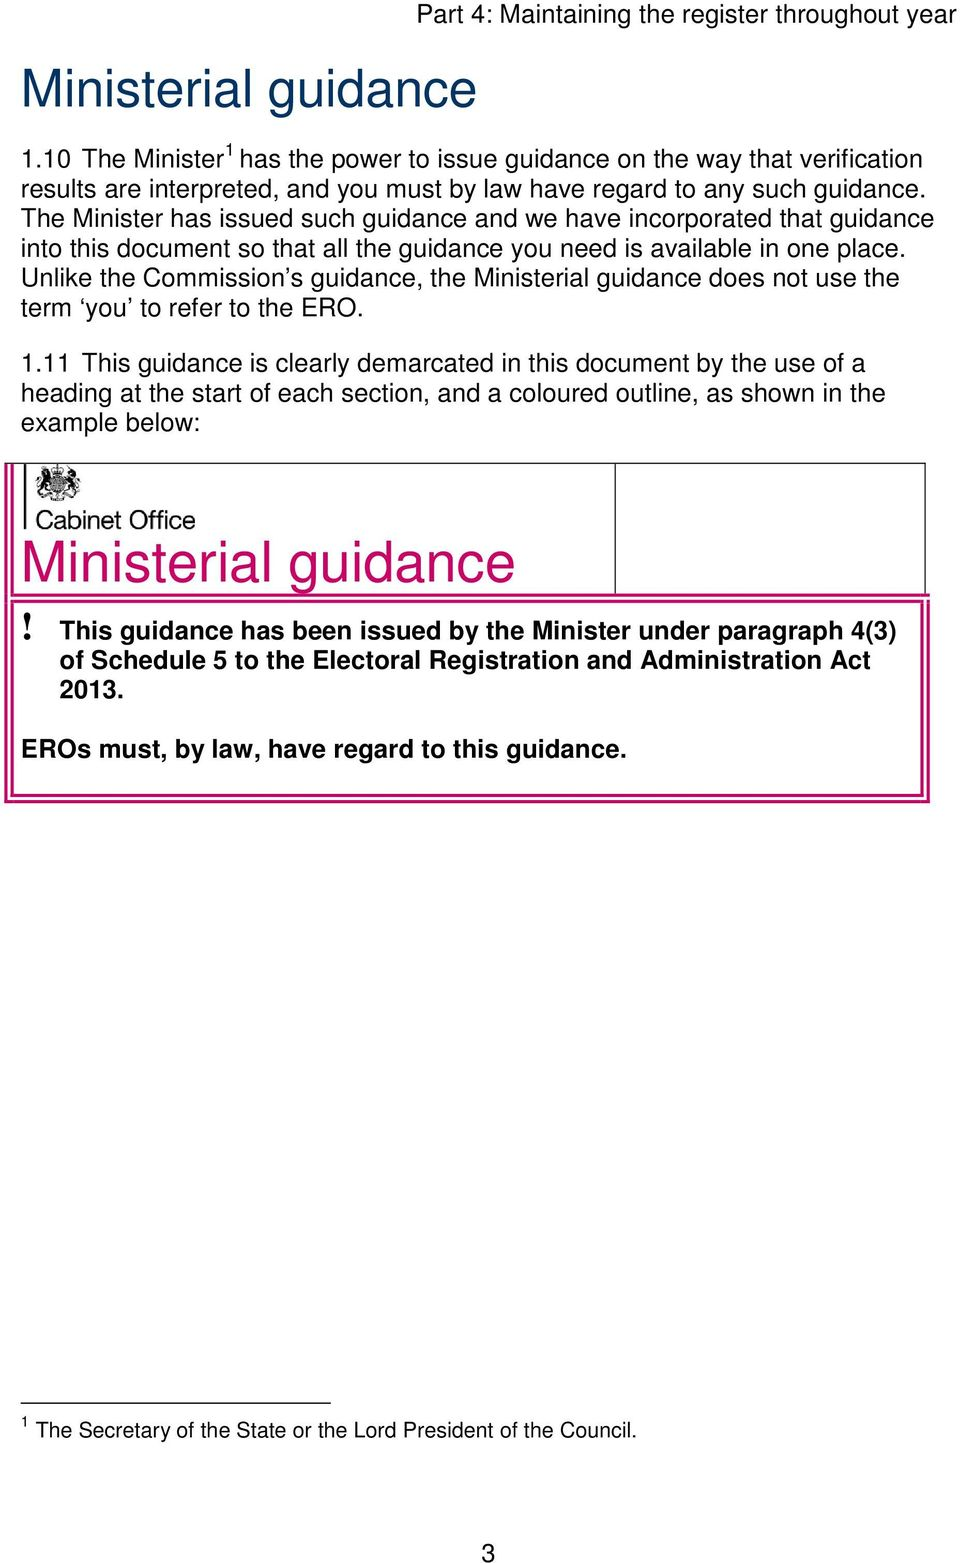 The Minister has issued such guidance and we have incorporated that guidance into this document so that all the guidance you need is available in one place.